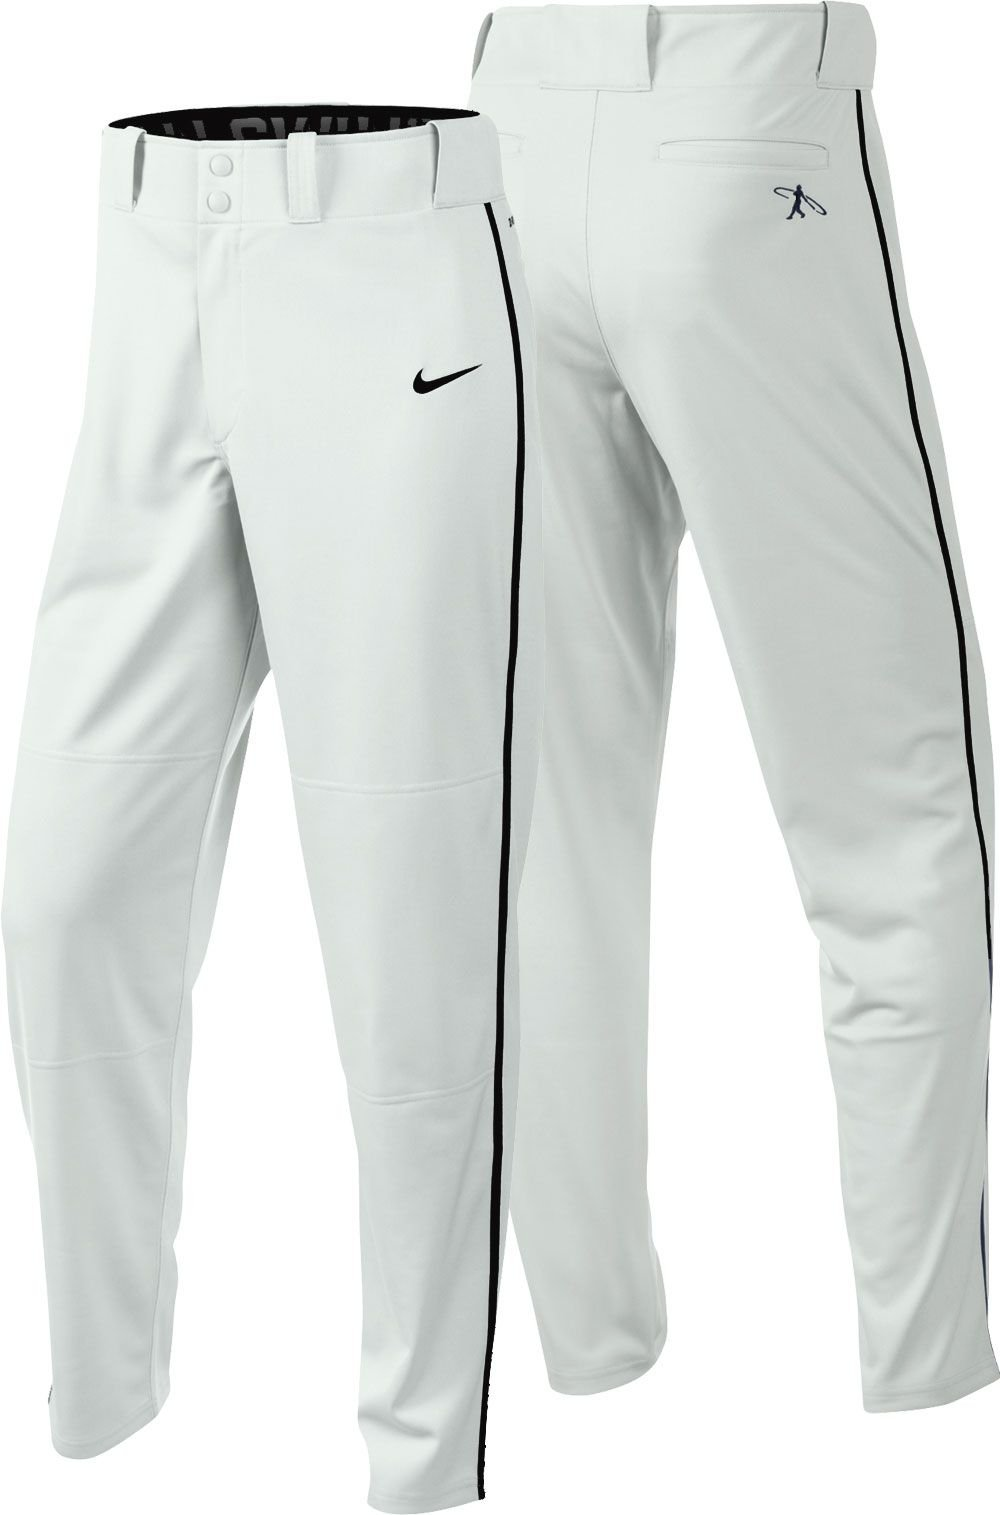 Nike Boys Swingman Dri-FIT Piped Baseball Pants (White/Black, Small) by Nike